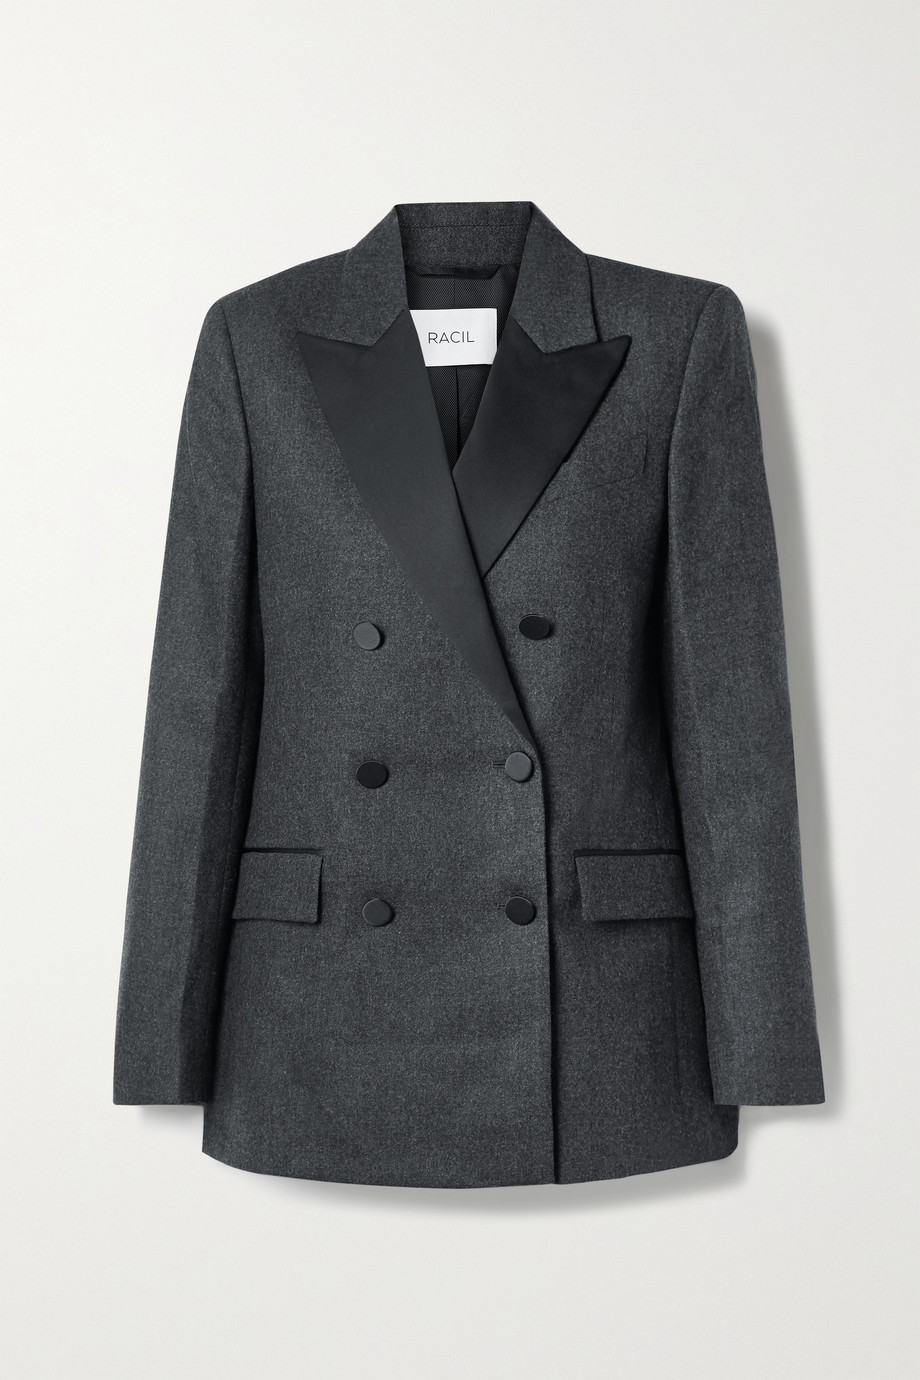 Racil Cambridge double-breasted satin-trimmed wool-blend blazer